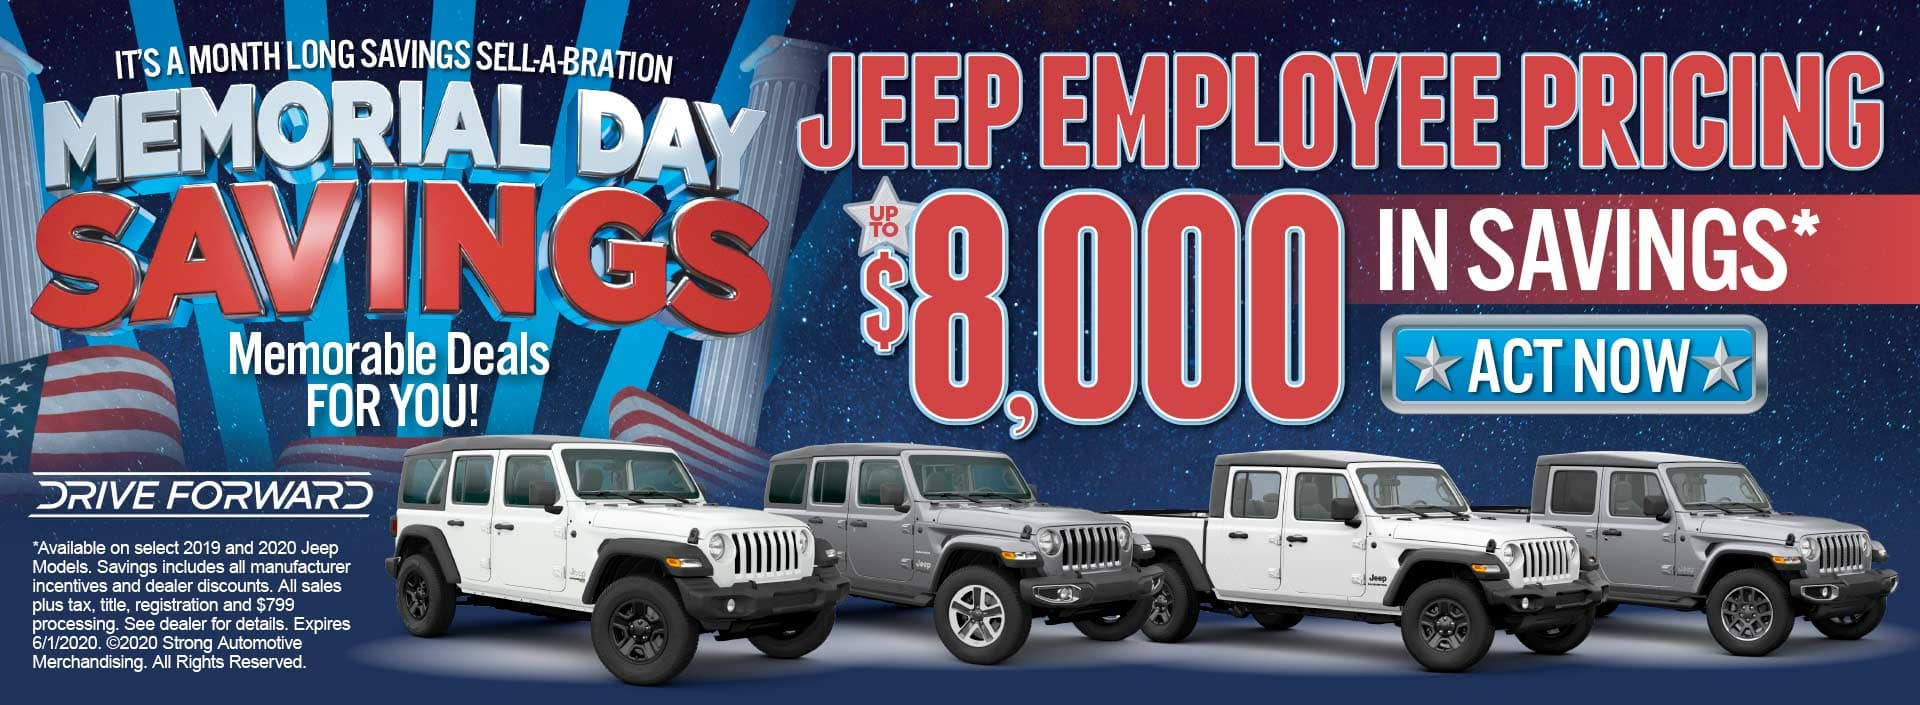 Jeep employee pricing up to $8000 in savings act now